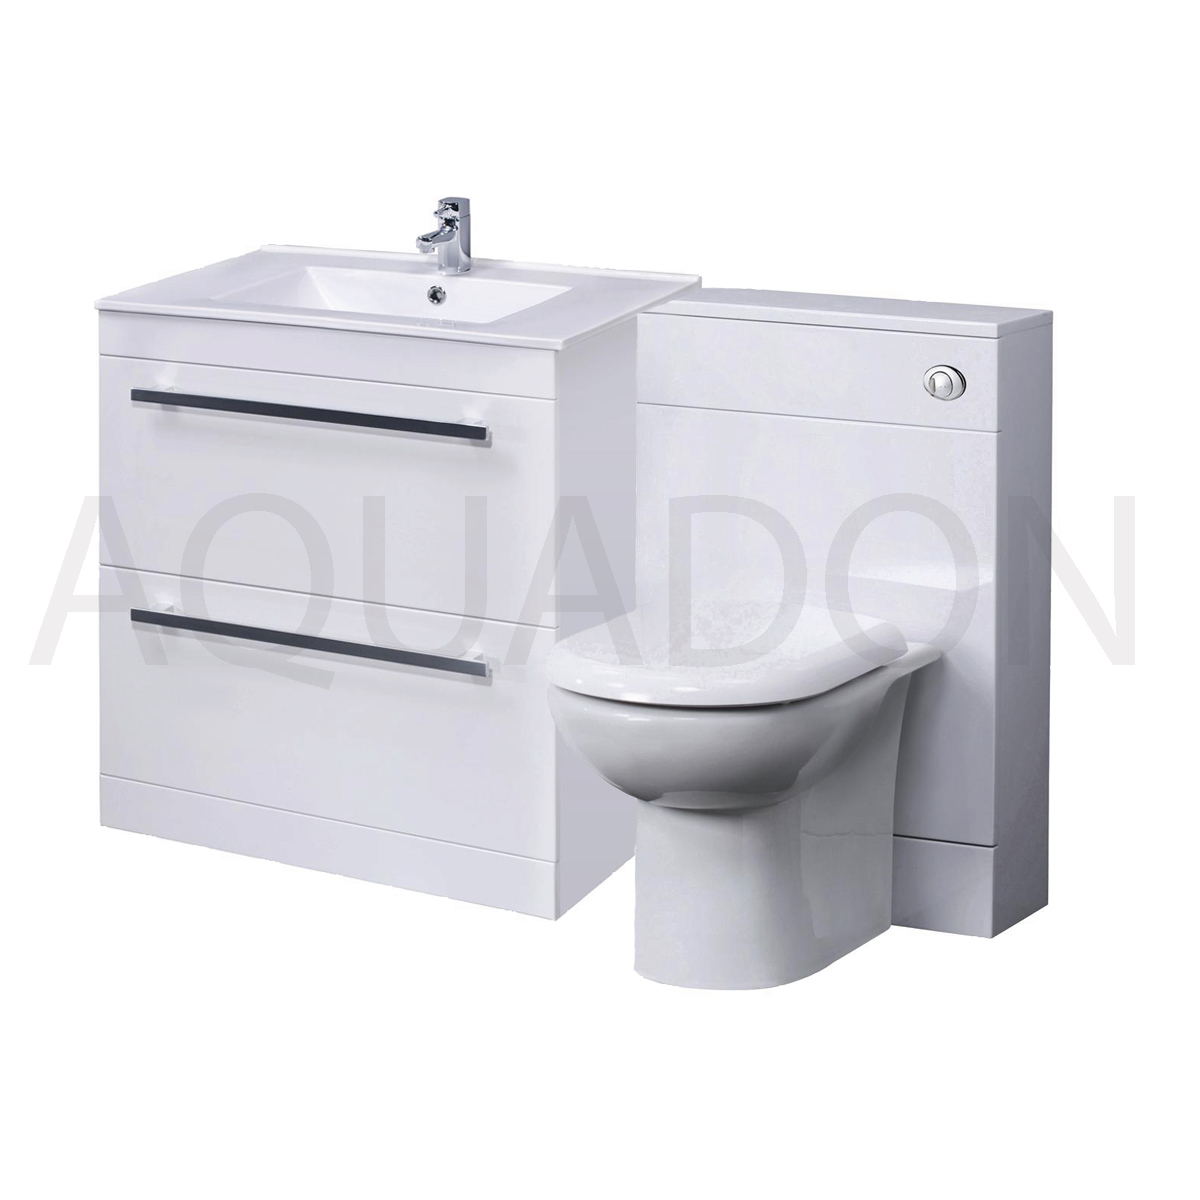 Toilet Sink Unit : Sink And Vanity Unit Related Keywords & Suggestions - Sink And Vanity ...